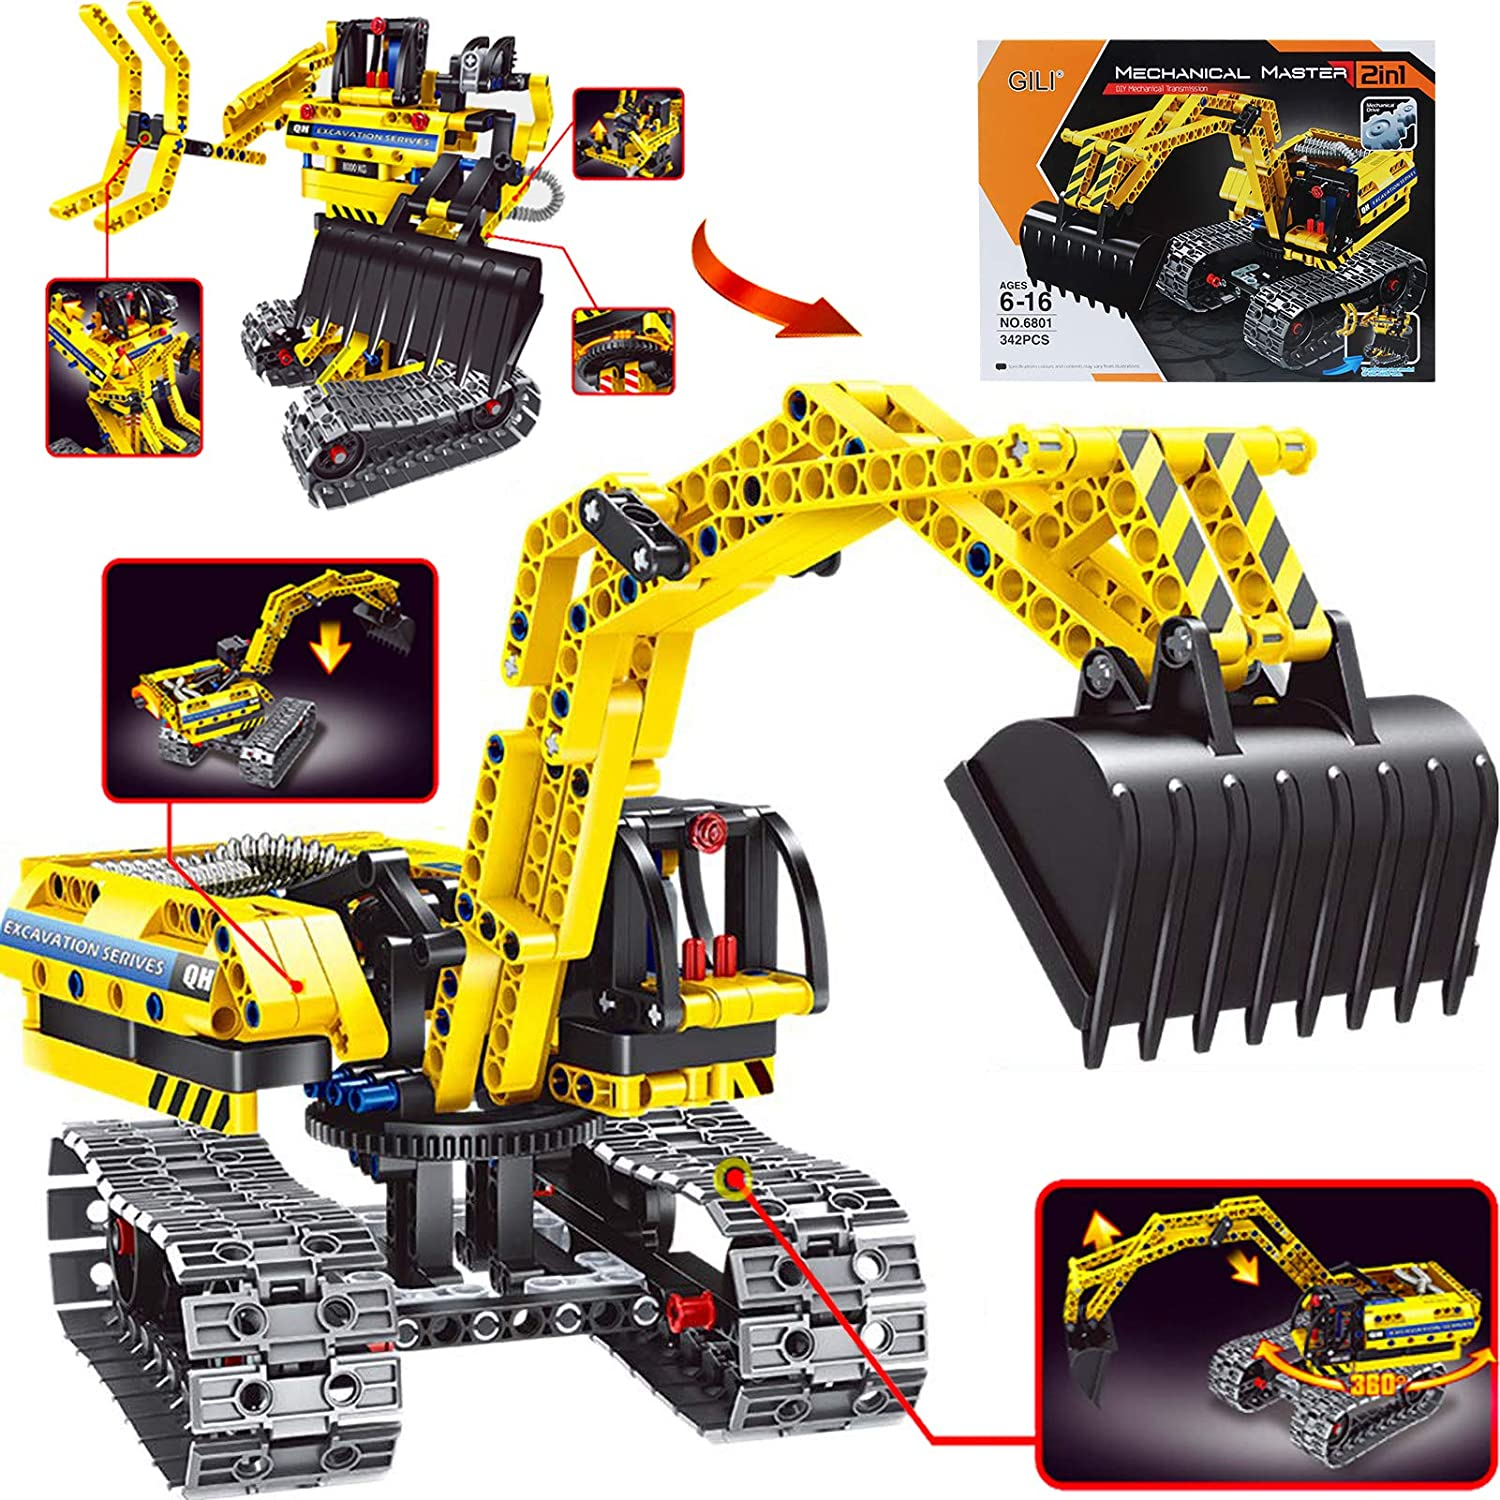 Amazon Com Gili Excavator Building Sets For 7 8 9 10 Year Old Boys Girls Construction Engineering Robot Toys For Kids Age 6 12 Educational Stem For Kids Toys Games